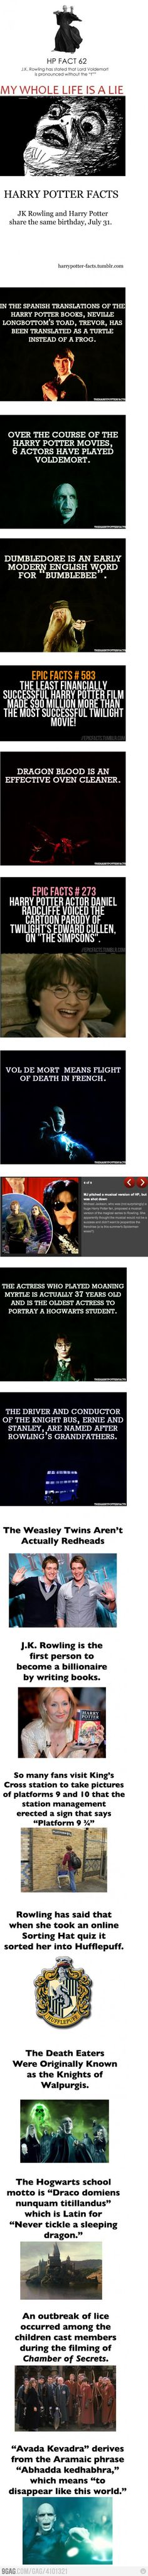 20 Facts You May Not Know About Harry Potter- love Epic fact #583!